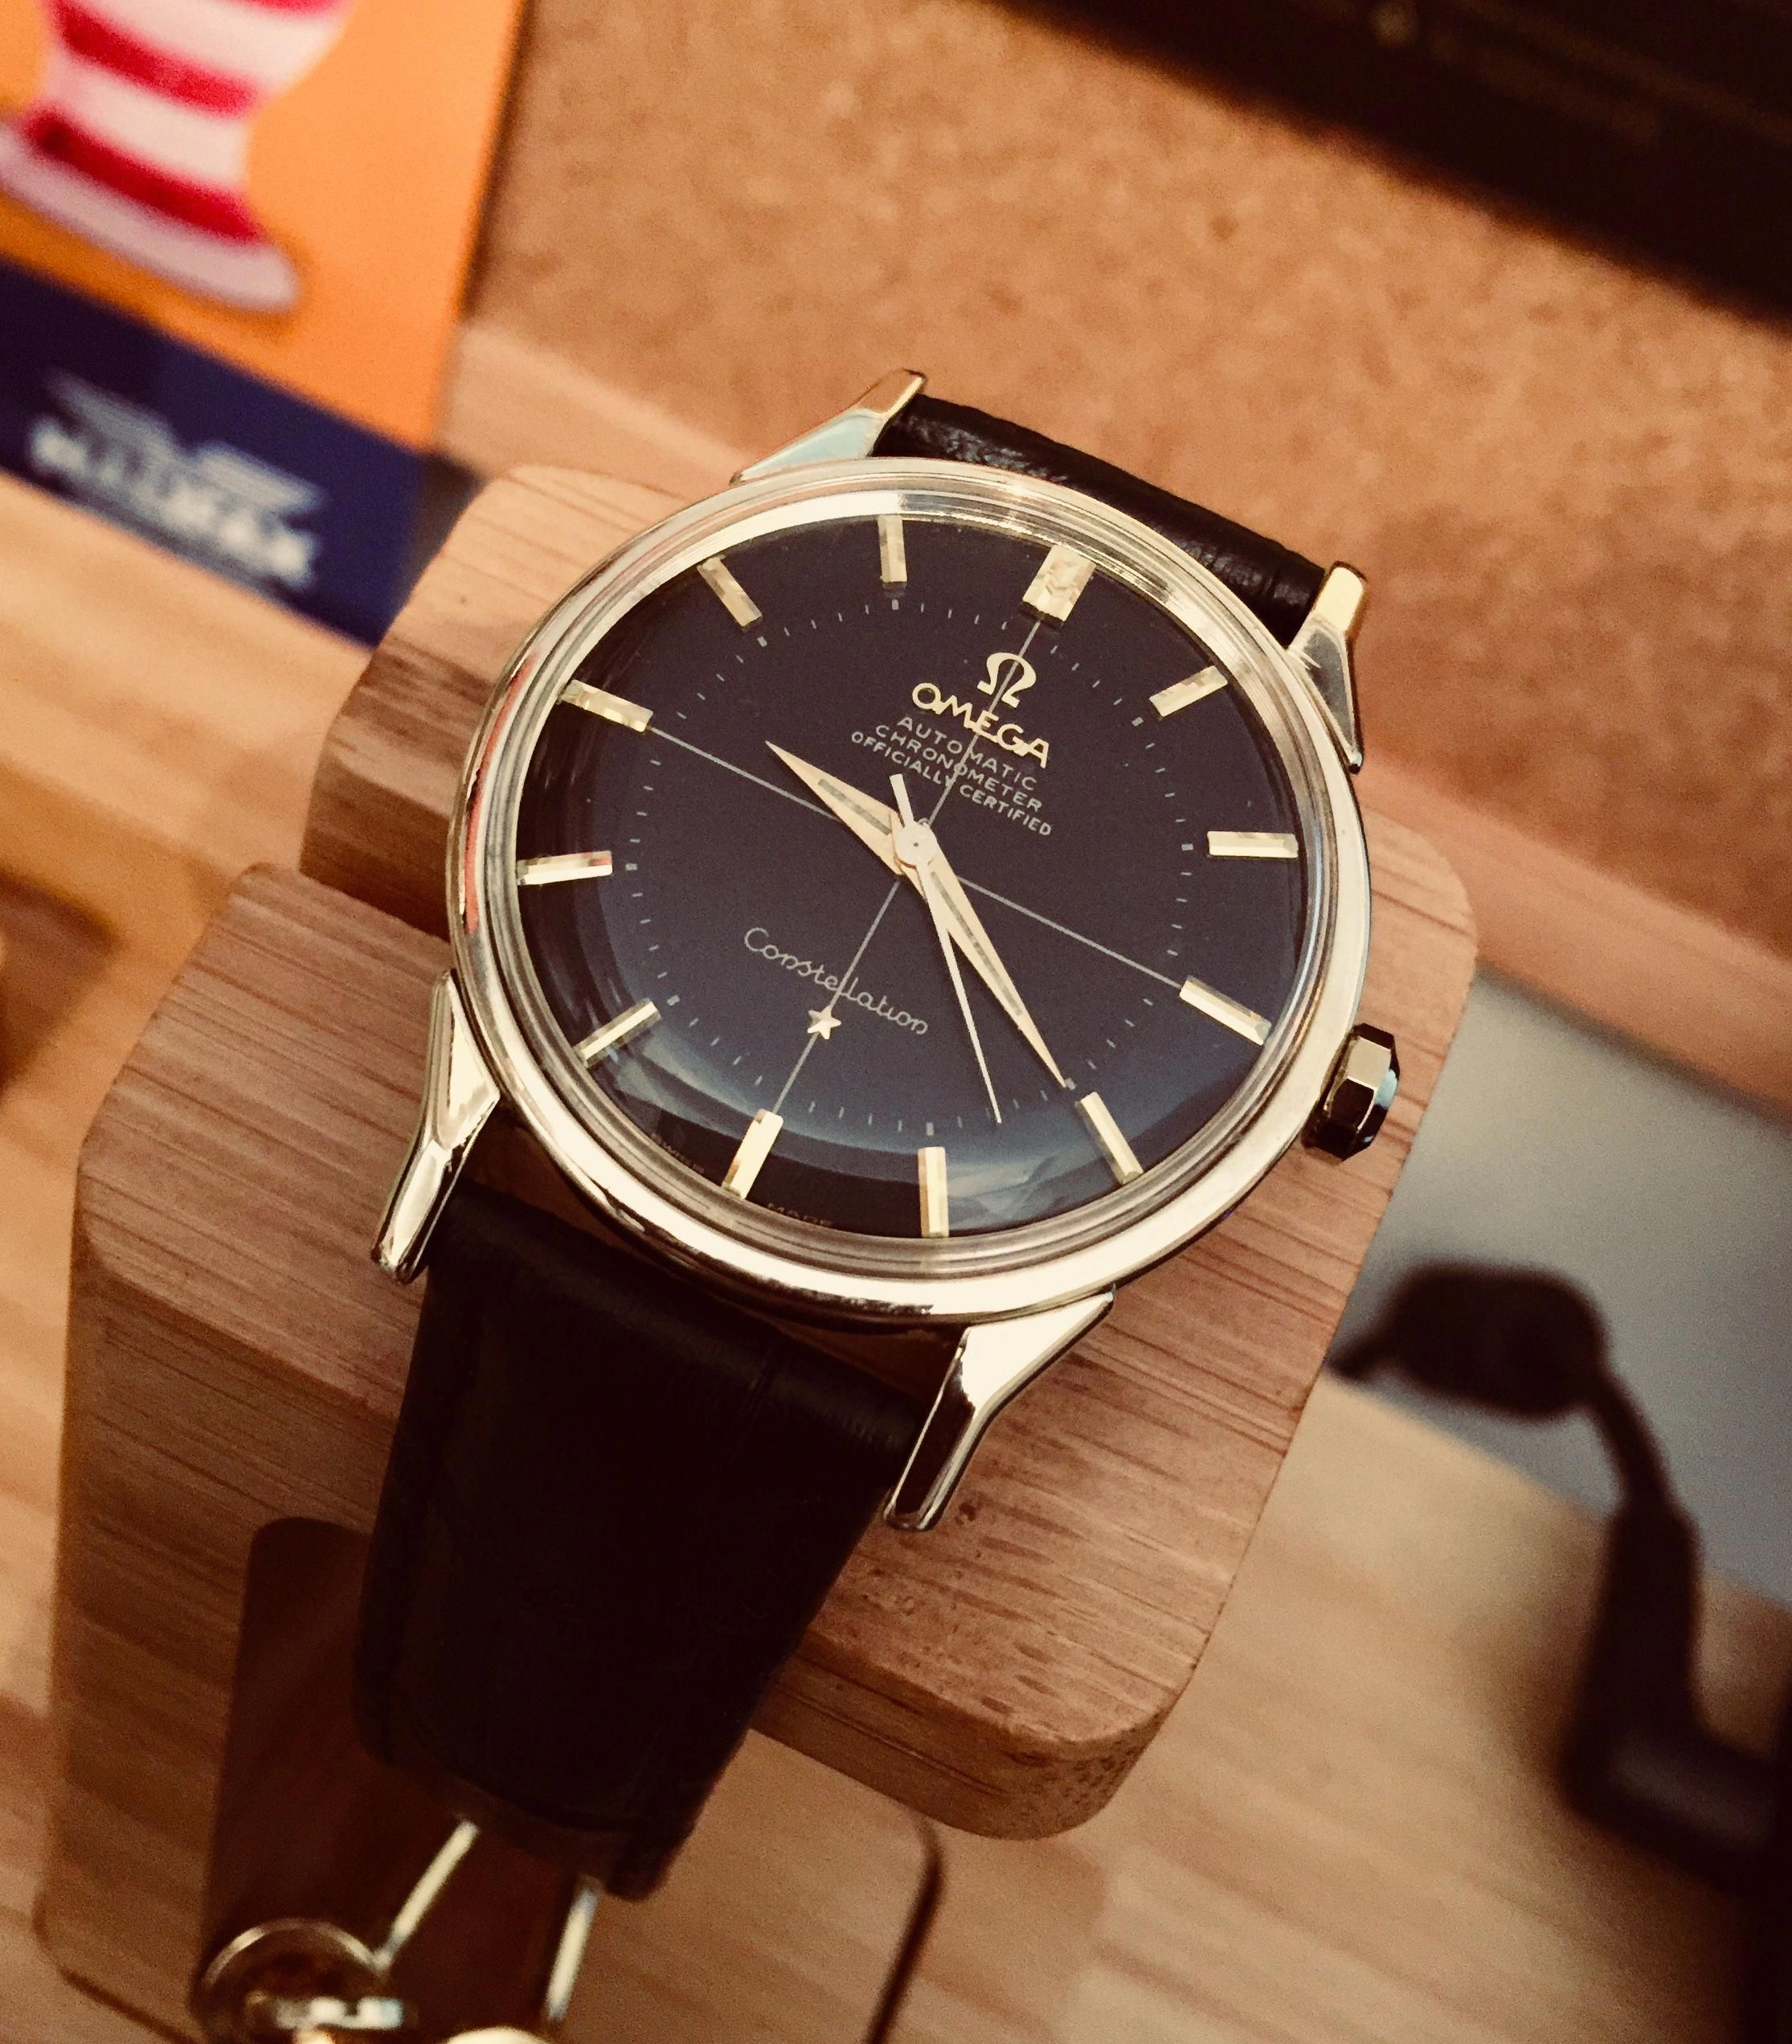 0b7d5e27fc38 Omega men s Constellation pie pan Cal 552 Gold Capped Black face dial  Crosshair 1960s Automatic movement  MensWatches